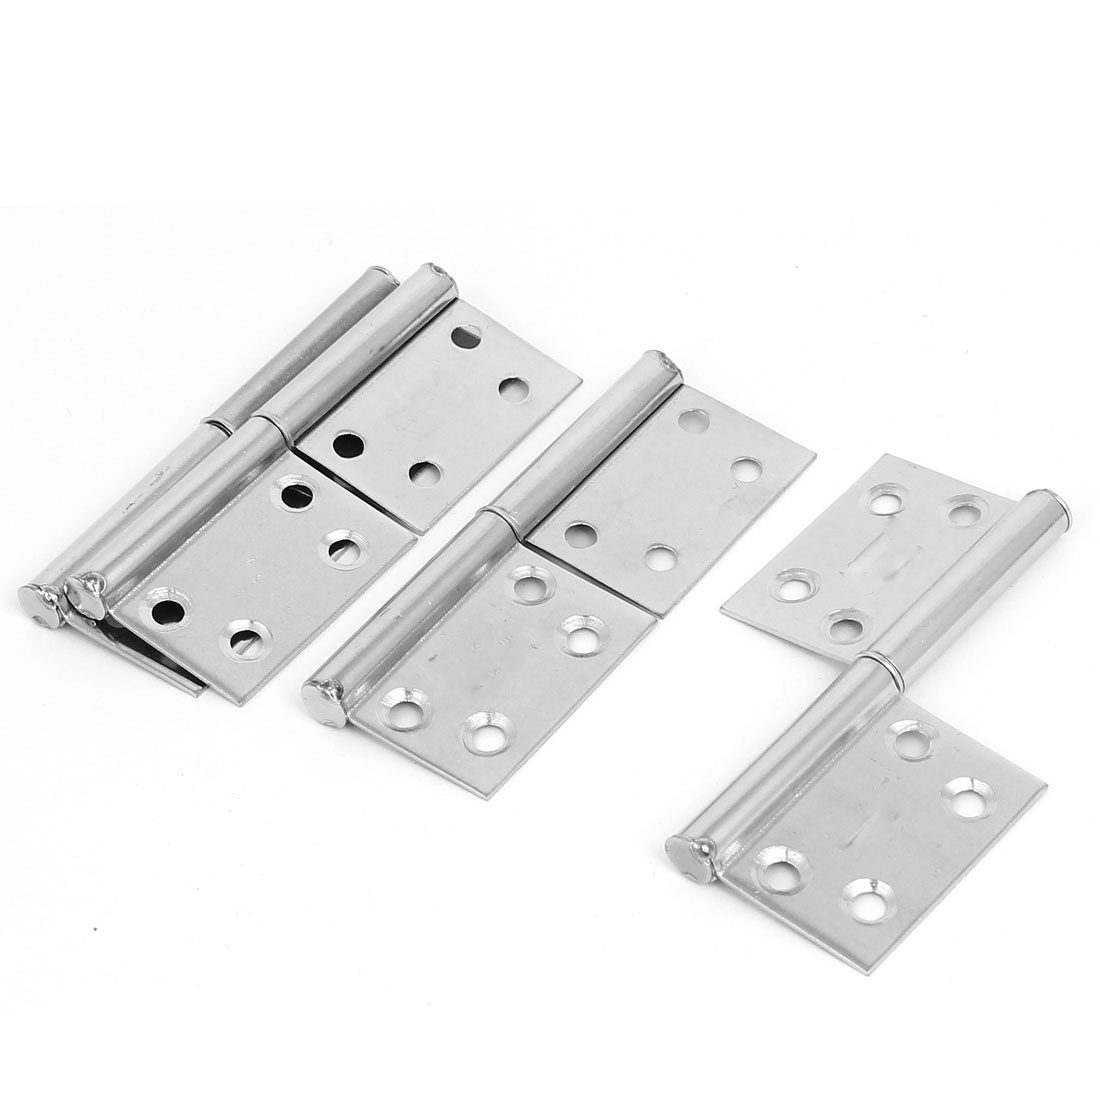 Cabinet Stainless Steel Screw Fixed Folding Flag Hinges 98mmx39mm 4pcs